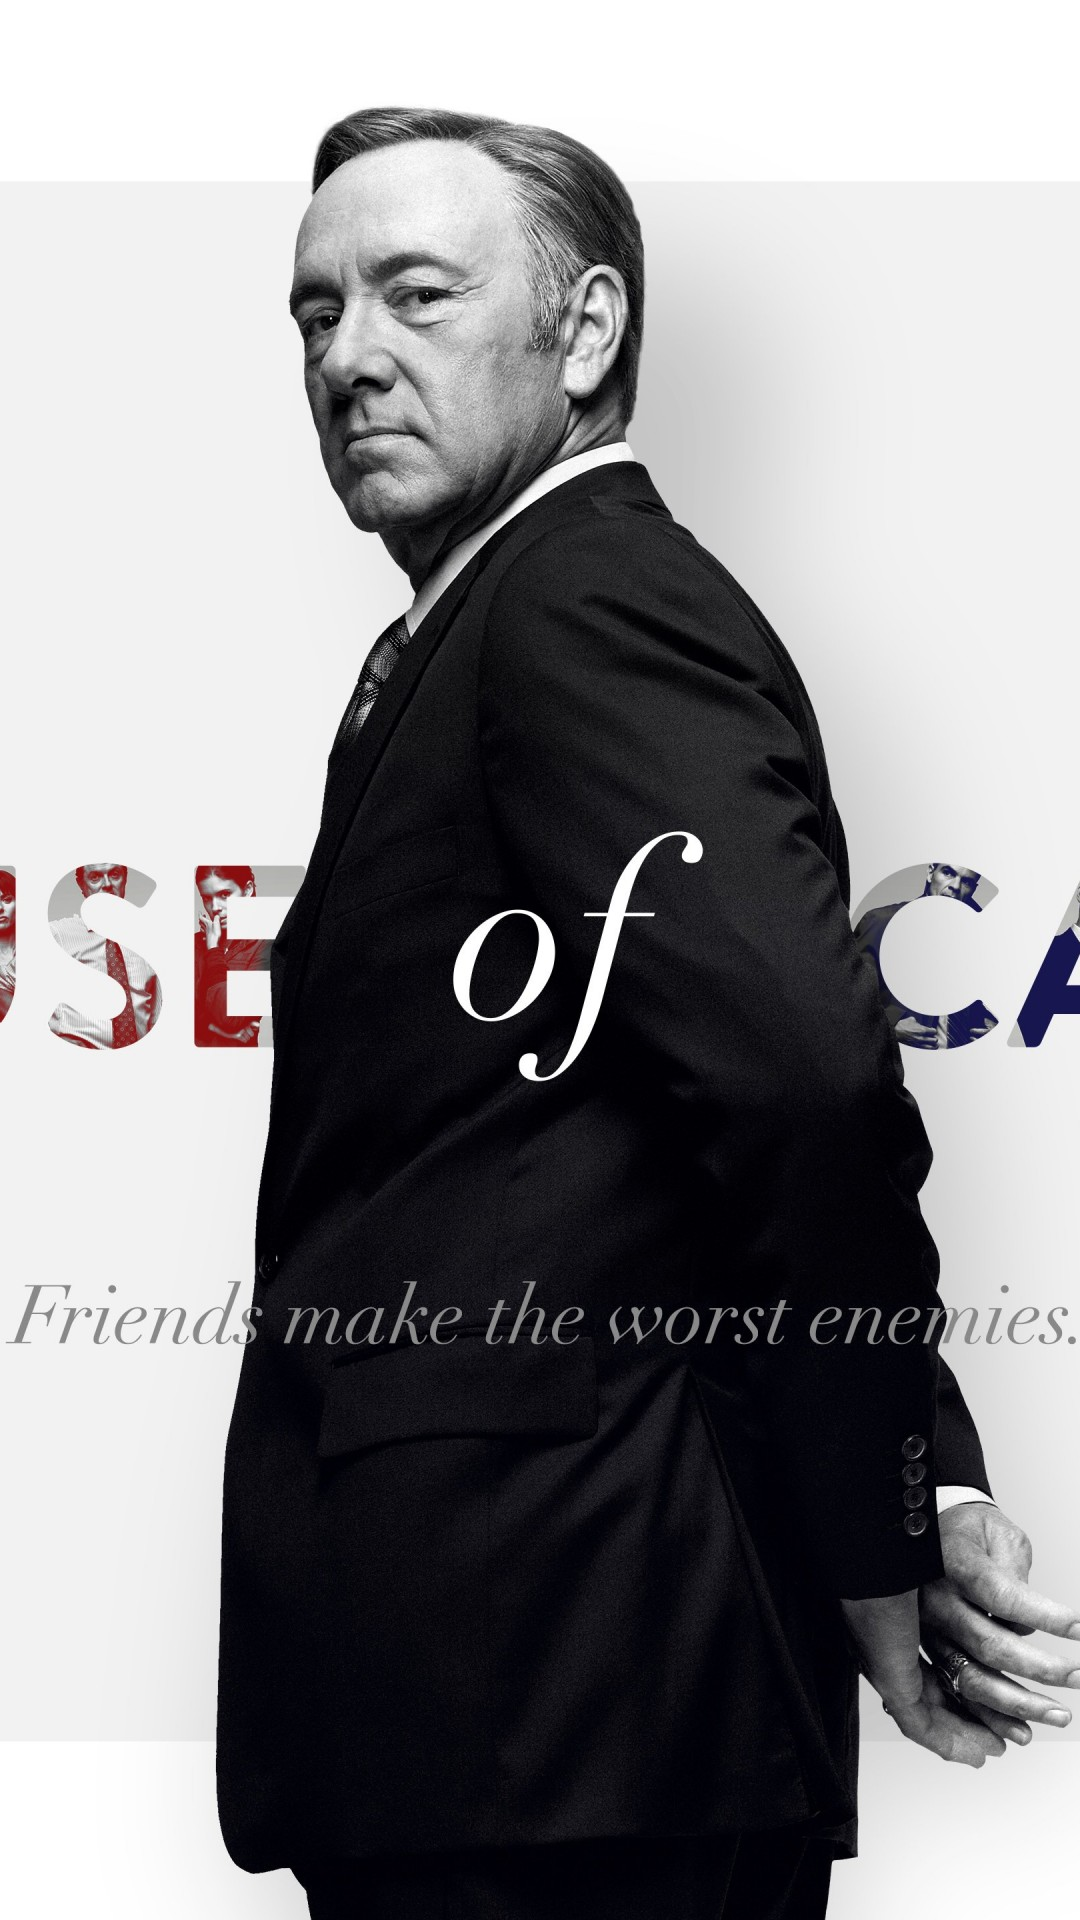 Frank Underwood - House of Cards Wallpaper for SAMSUNG Galaxy S4